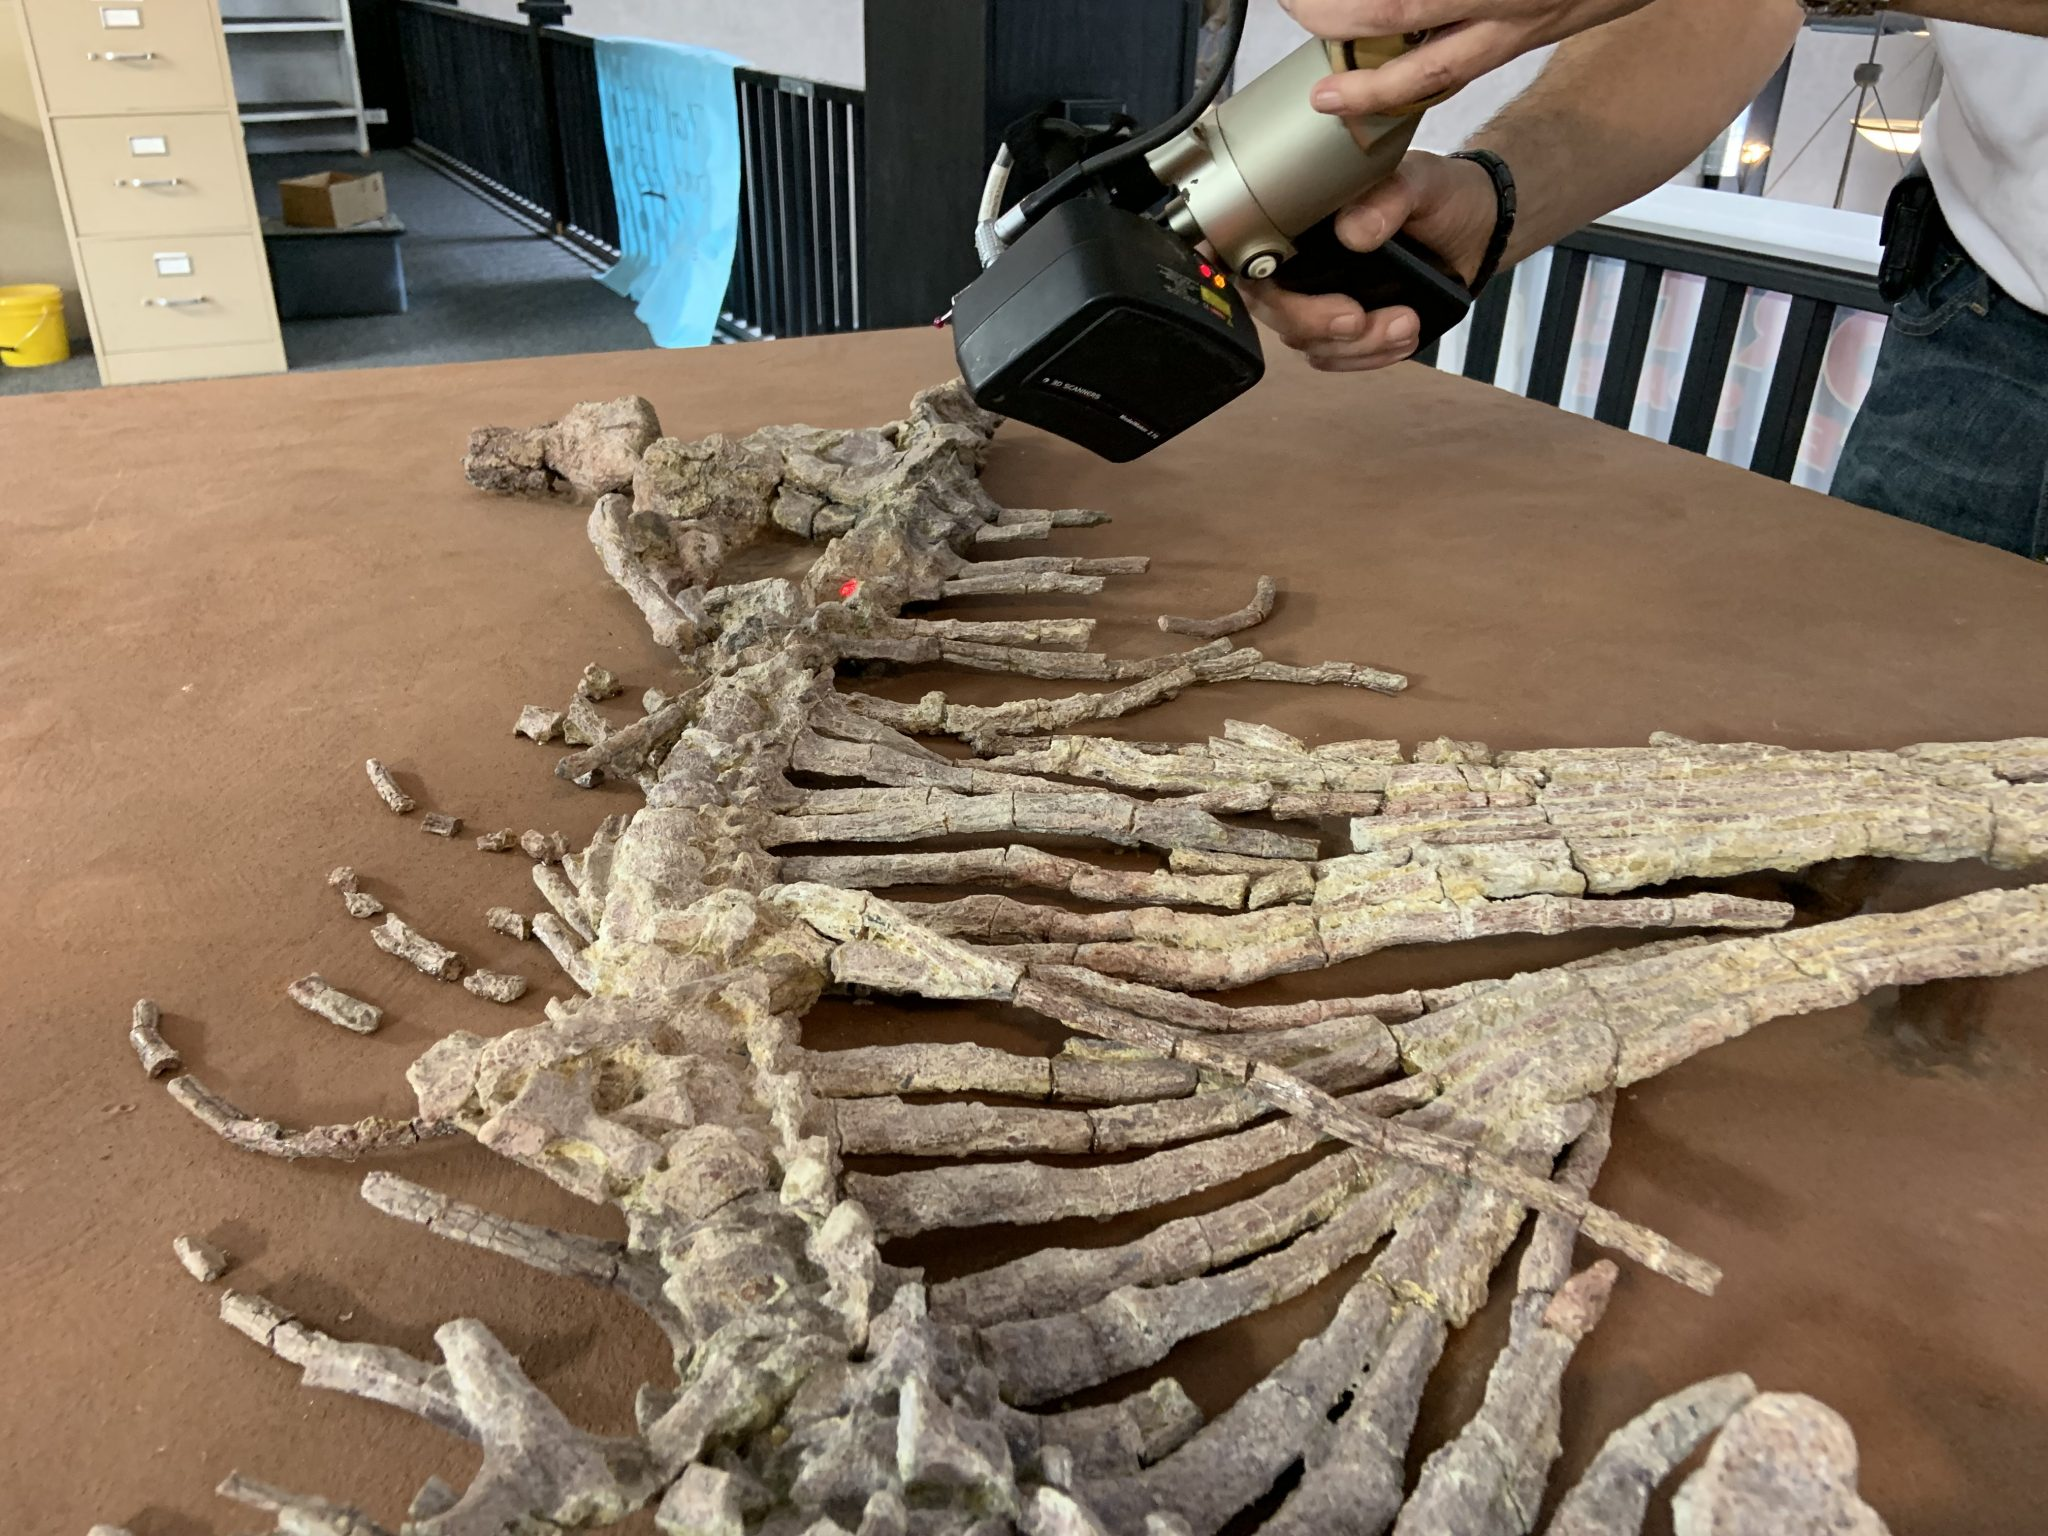 NVison's non-contact HandHeld scanner is ideal for capturing the geometry of fragile objects, such as the nearly 300-million-year-old Dimetrodon skeleton. Photo via NVision.